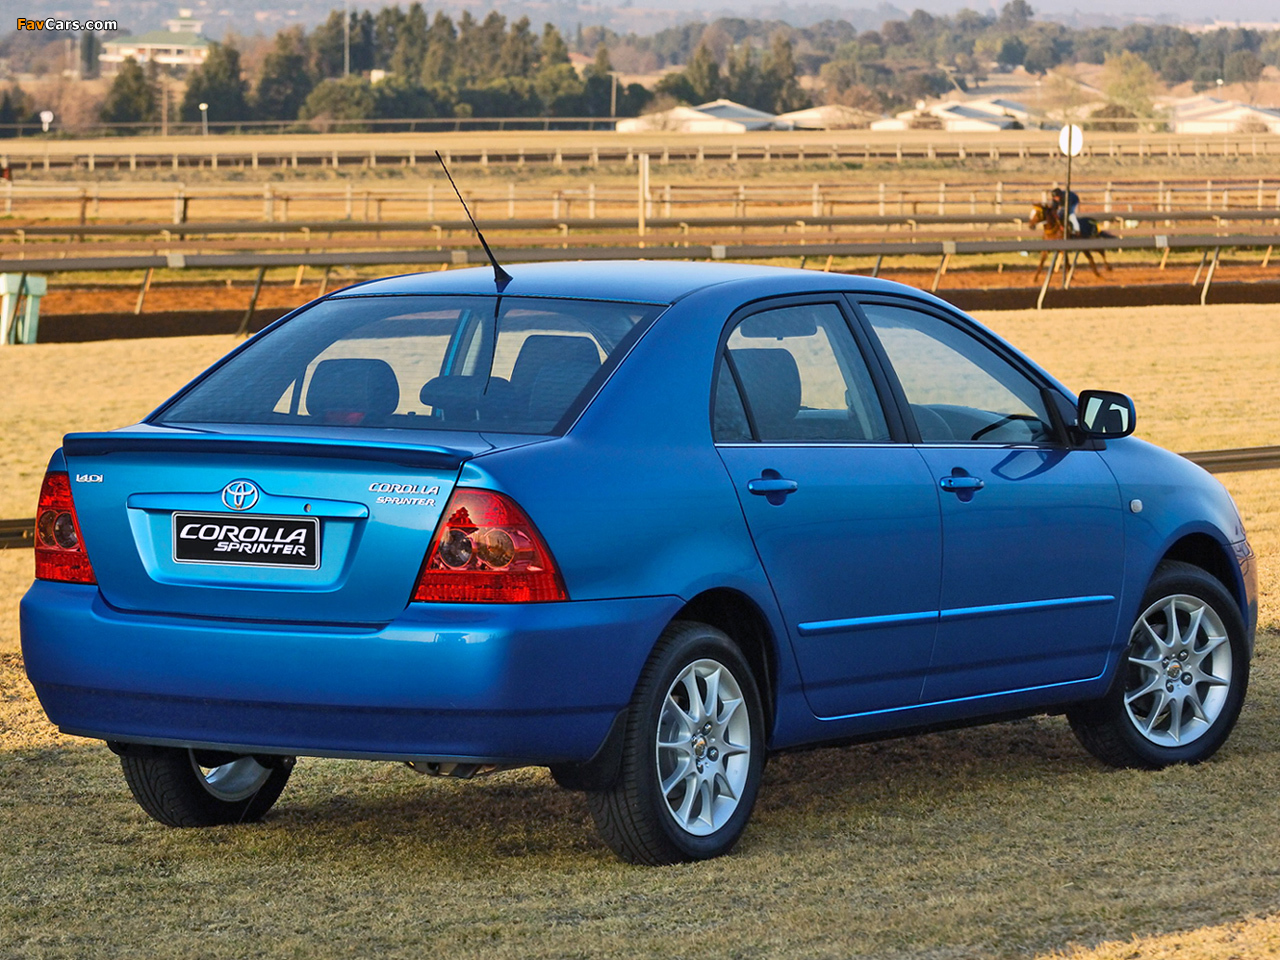 Images Of Toyota Corolla Sprinter 2004 07 1280x960